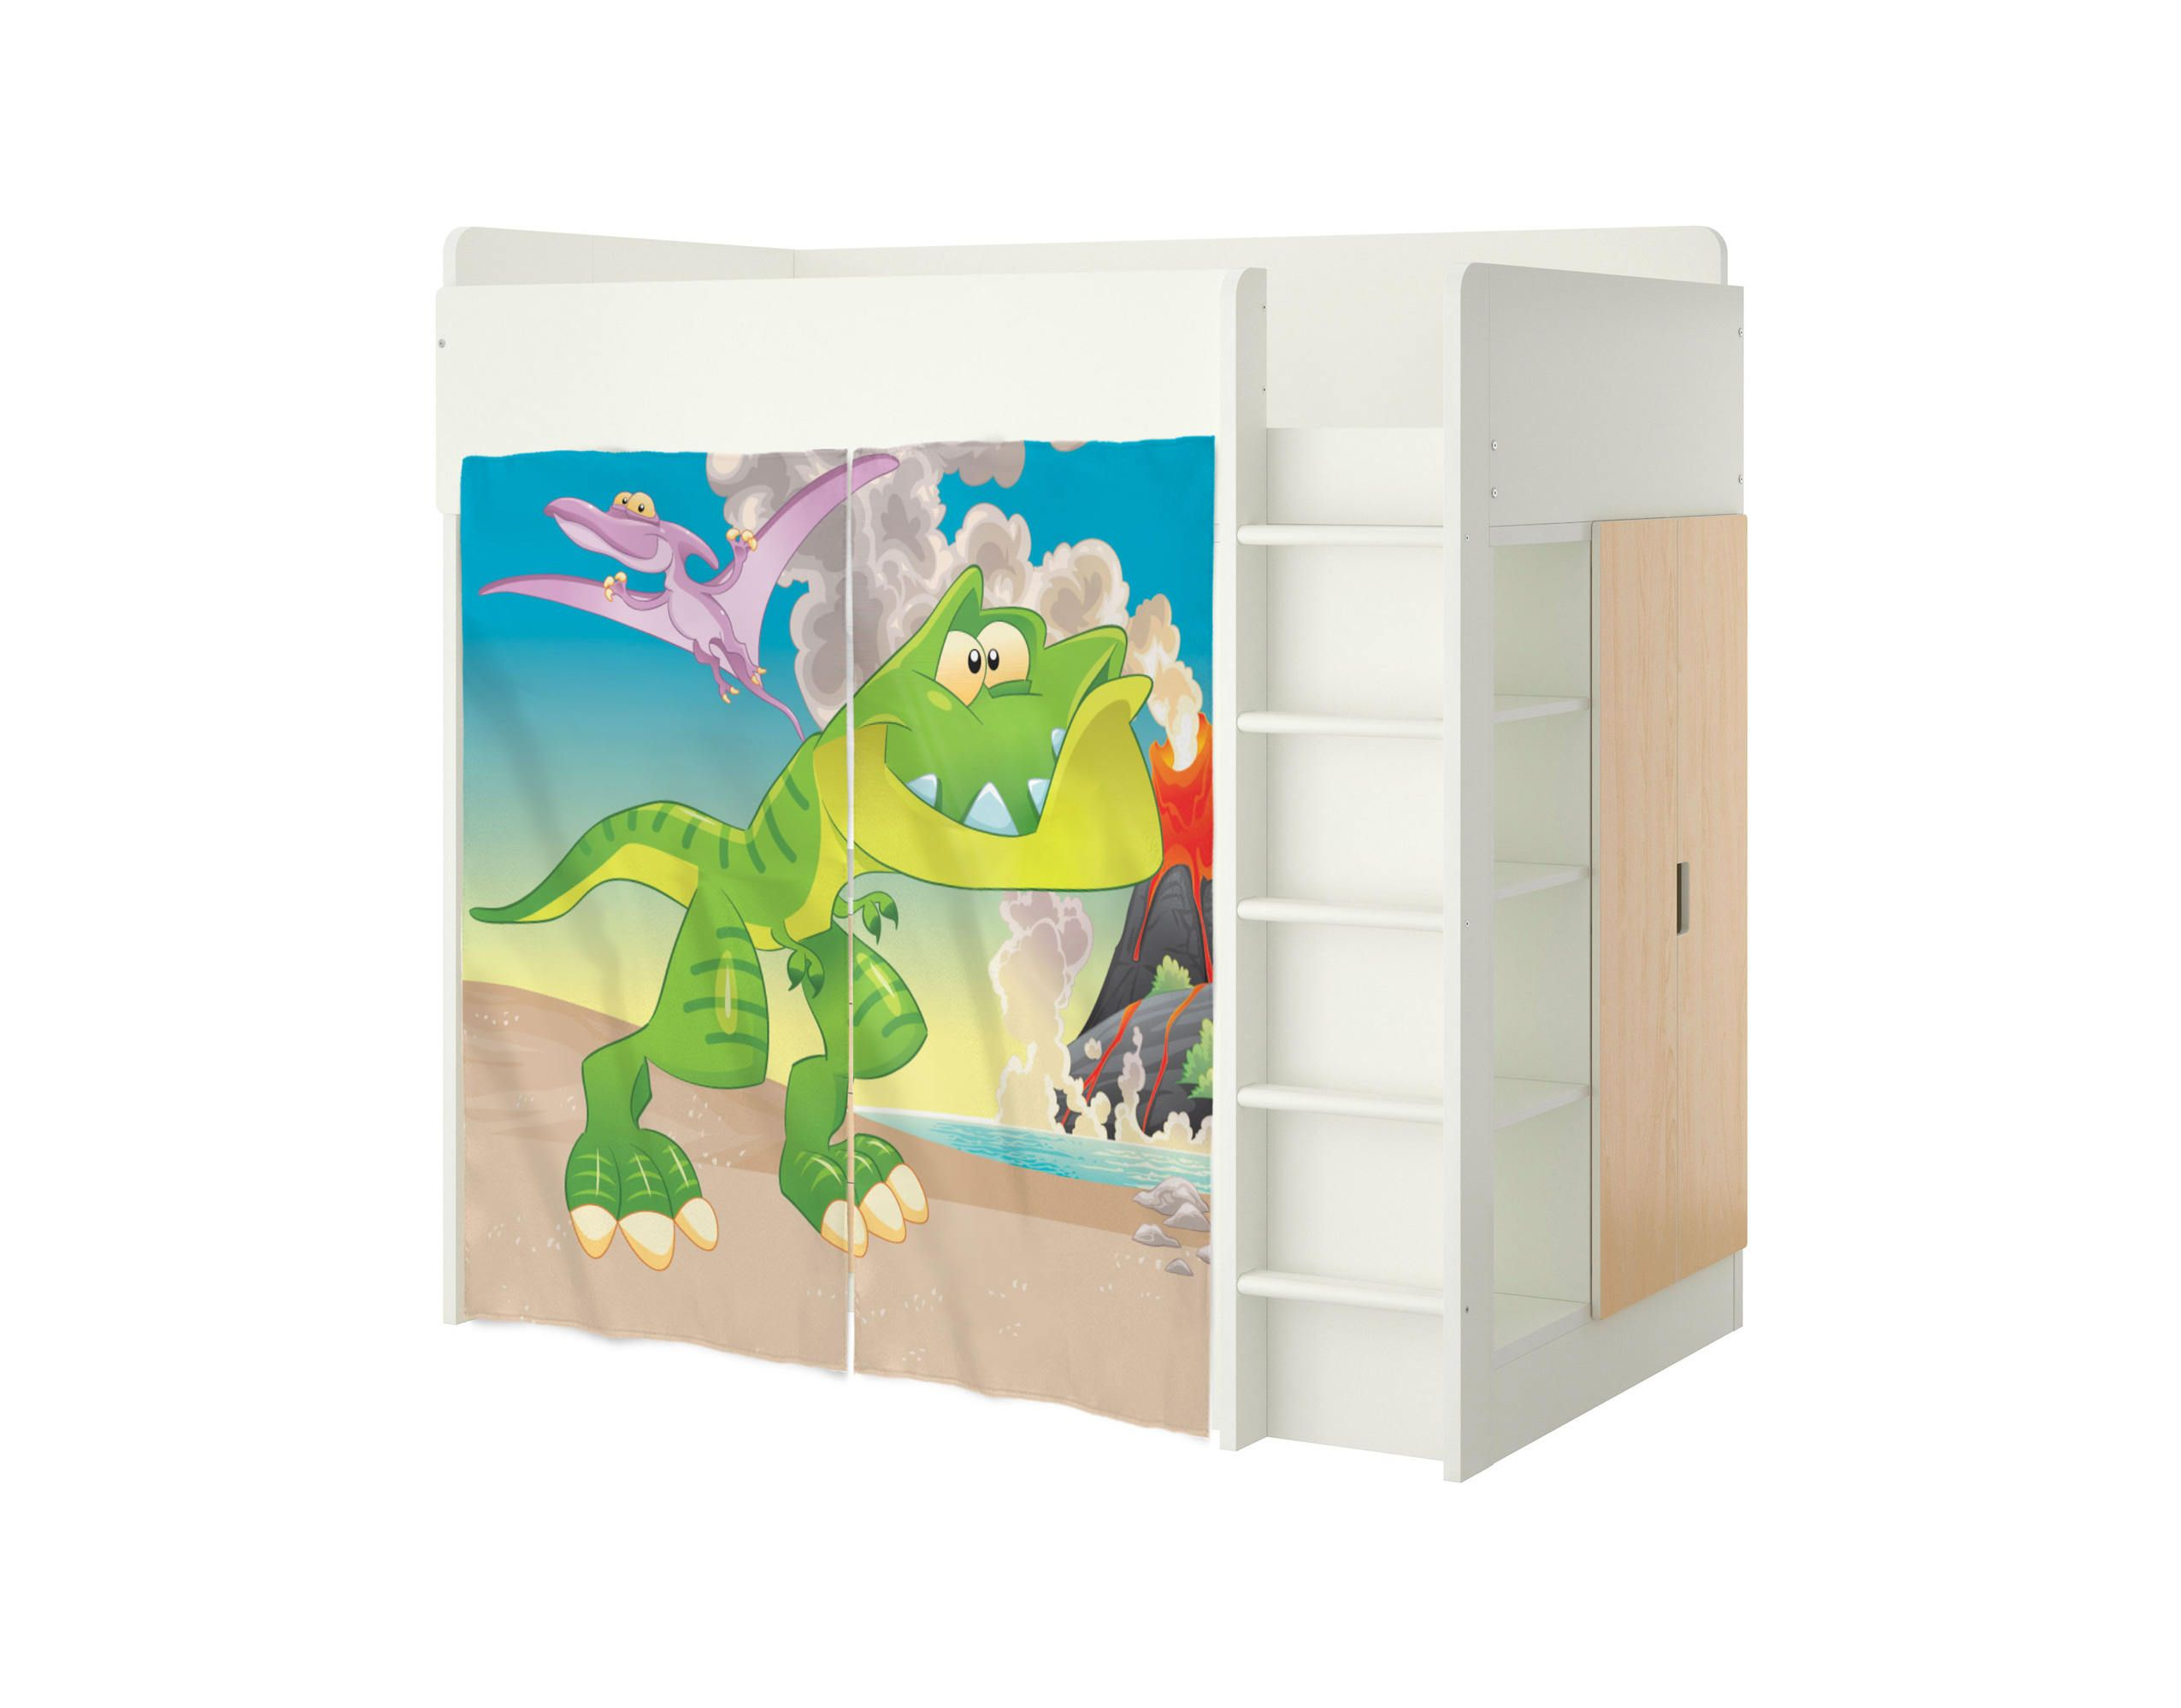 Playhouse for Ikea Stuva Bed Dinosaur Playhouse Curtains Stuva Bed Tent Bunk Bed Accessories Bunk Bed House Loft Curtains  sc 1 st  Pinterest & Playhouse for Ikea Stuva Bed Dinosaur Playhouse Curtains Stuva ...